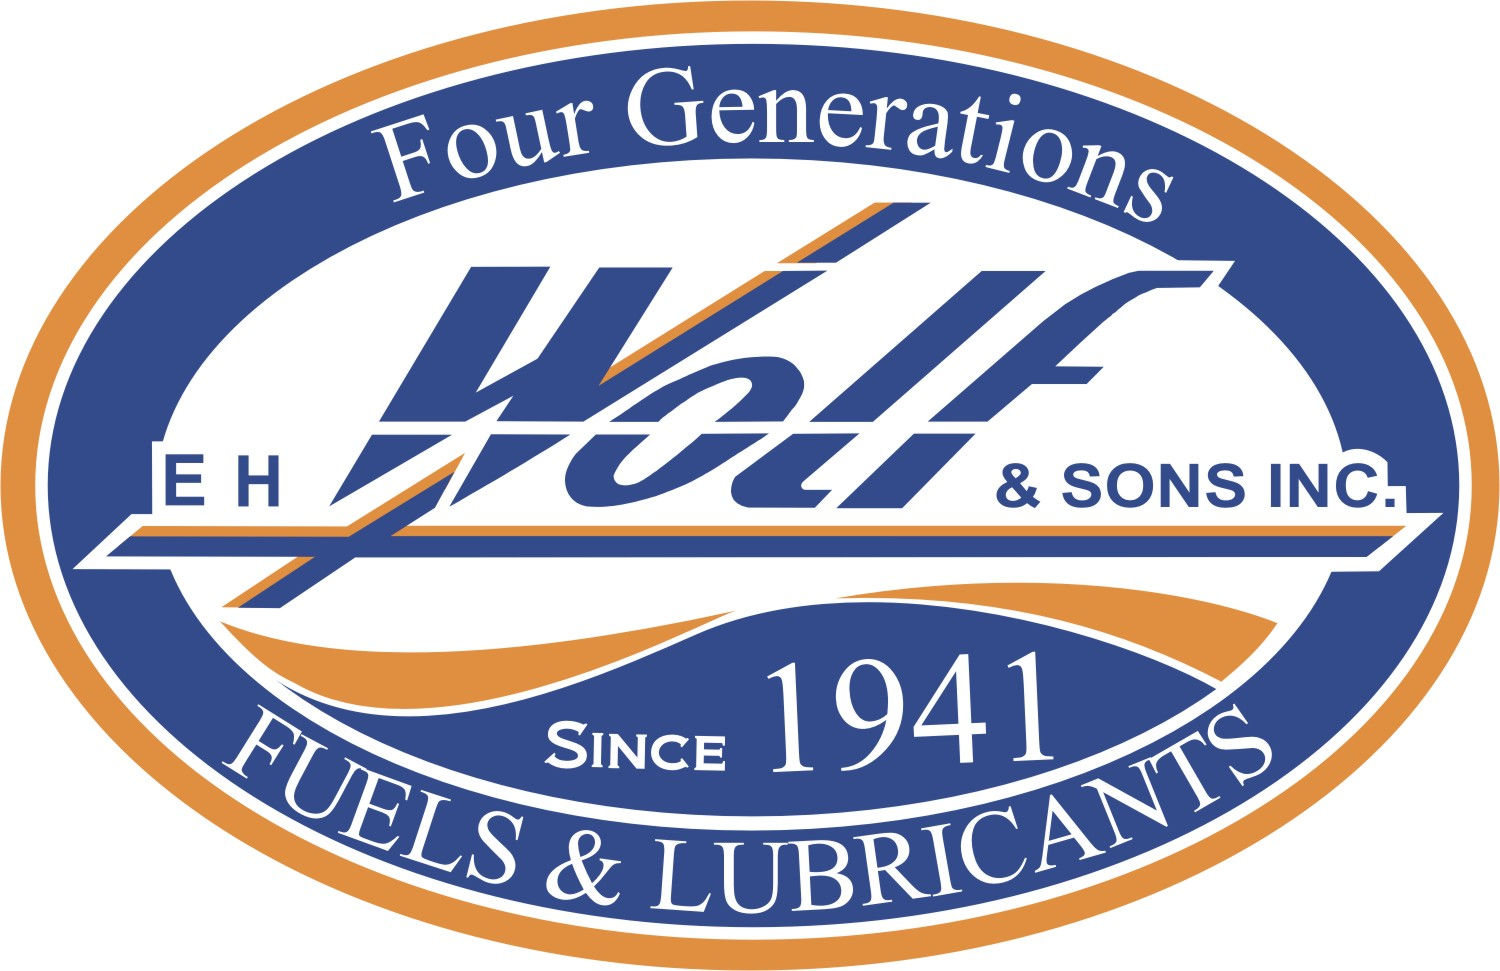 E.H. Wolf & Sons, Inc | Fuel & Lubrication Experts